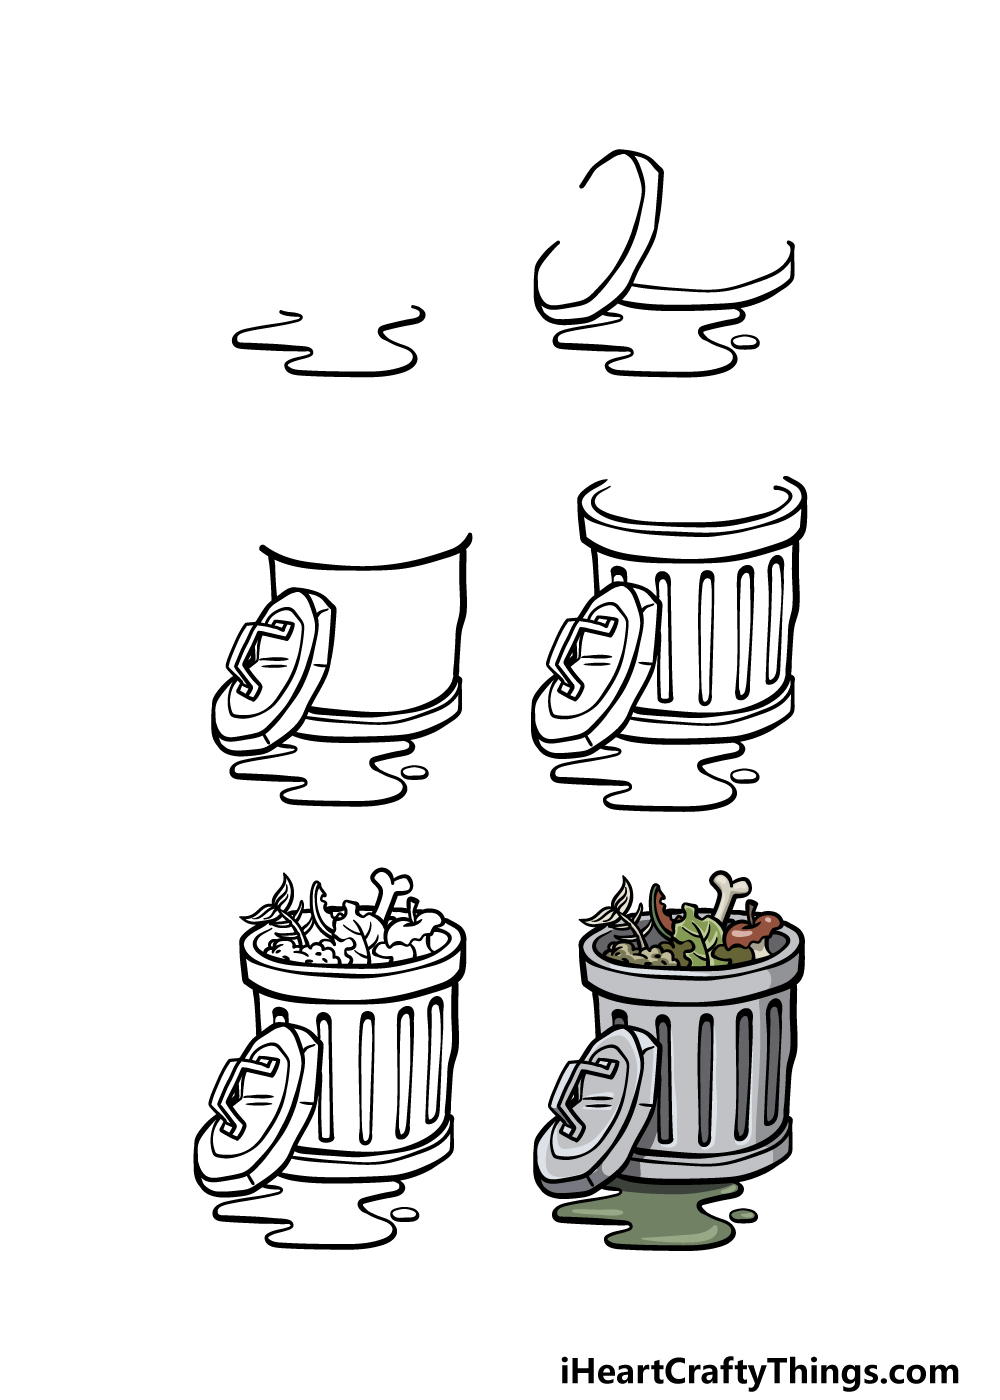 how to draw a trash can in 6 steps